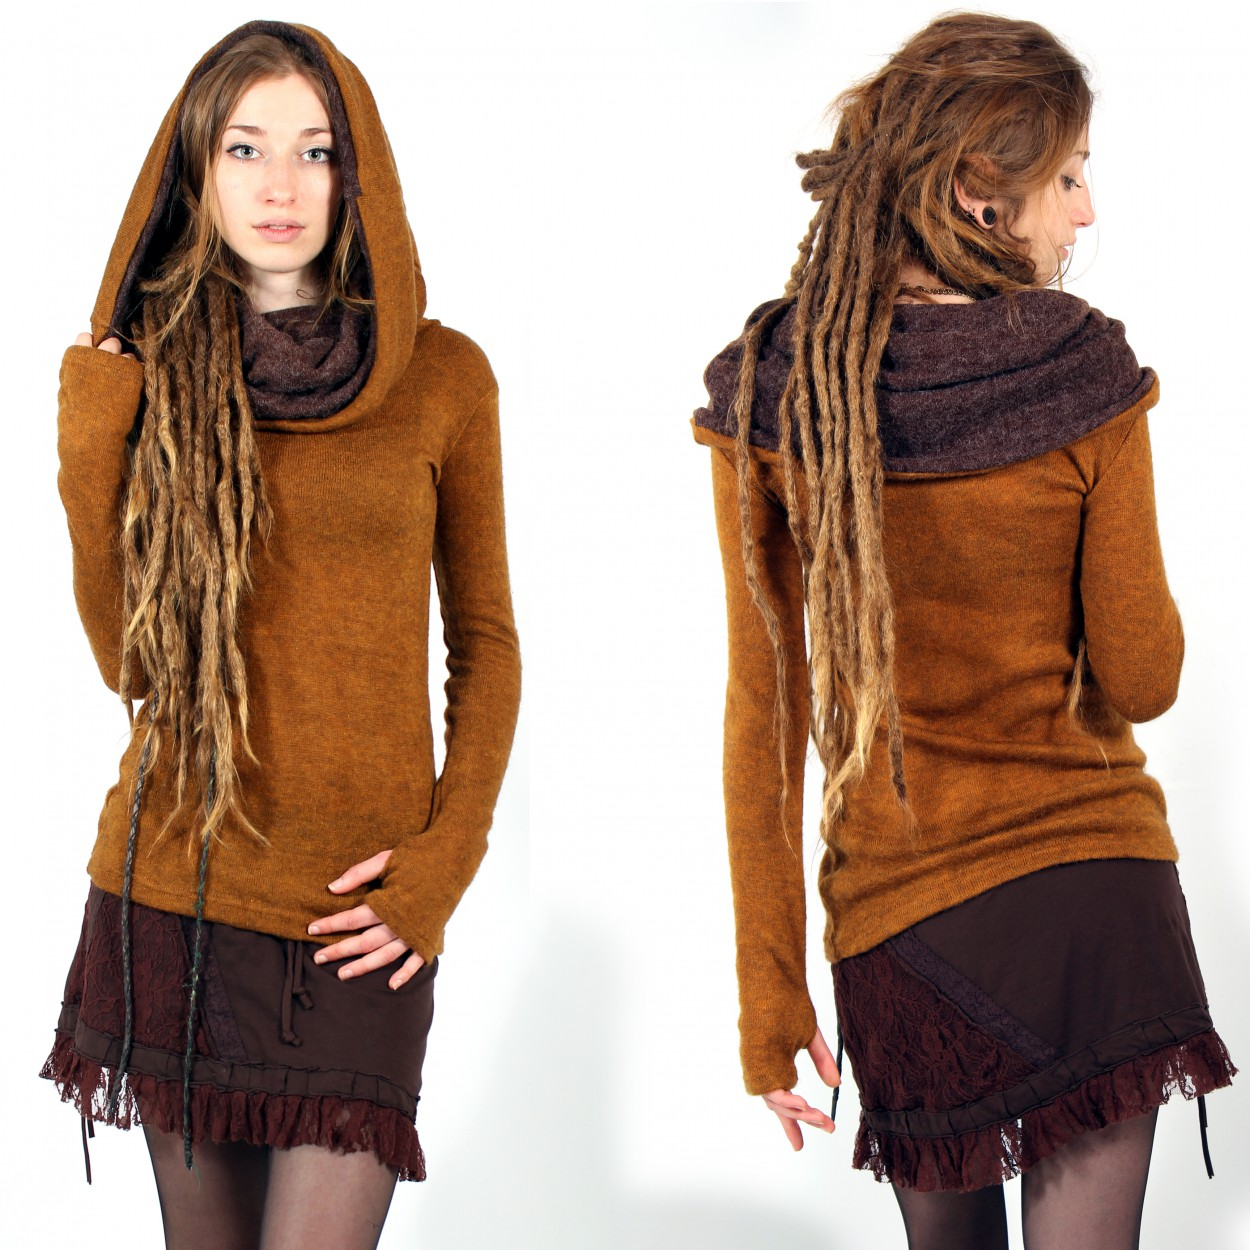 ""\""""Mantra"""" pullover, Rusty and brown""1250|1250|?|en|2|24a59c847363da39b775248007f2ef33|False|UNLIKELY|0.32265952229499817